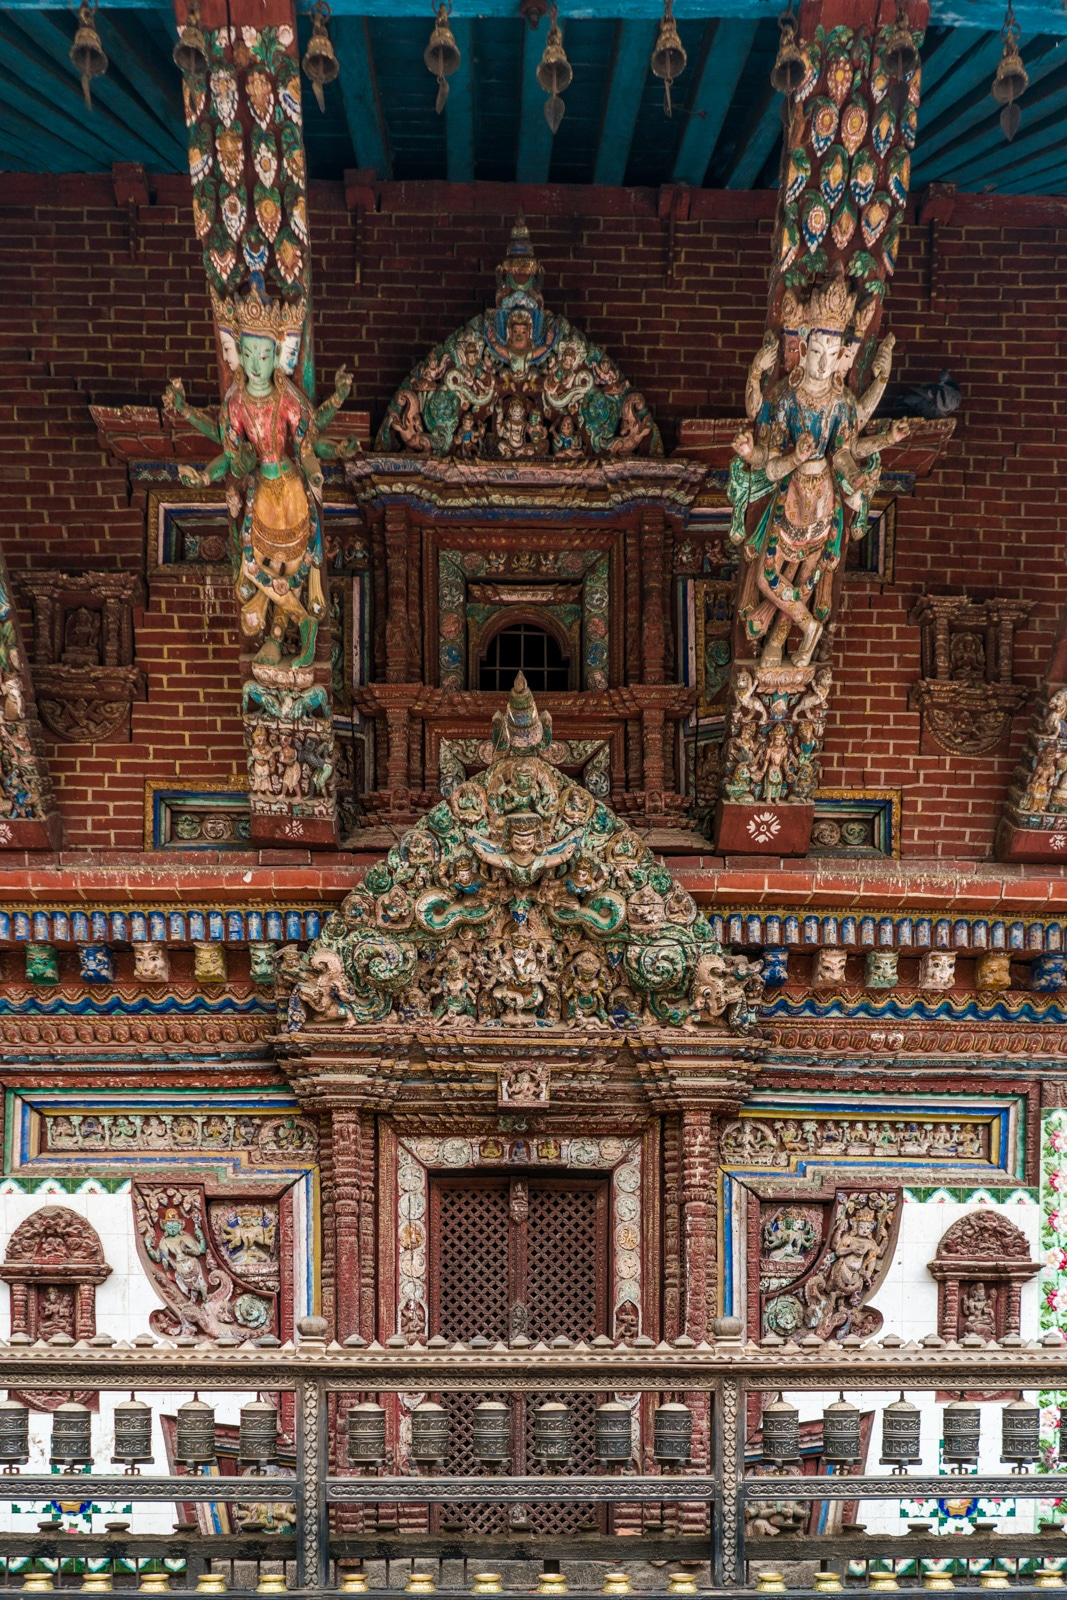 Intricate, painted wooden detail work on a red brick Buddhist stupa in the center of Patan, Nepal.